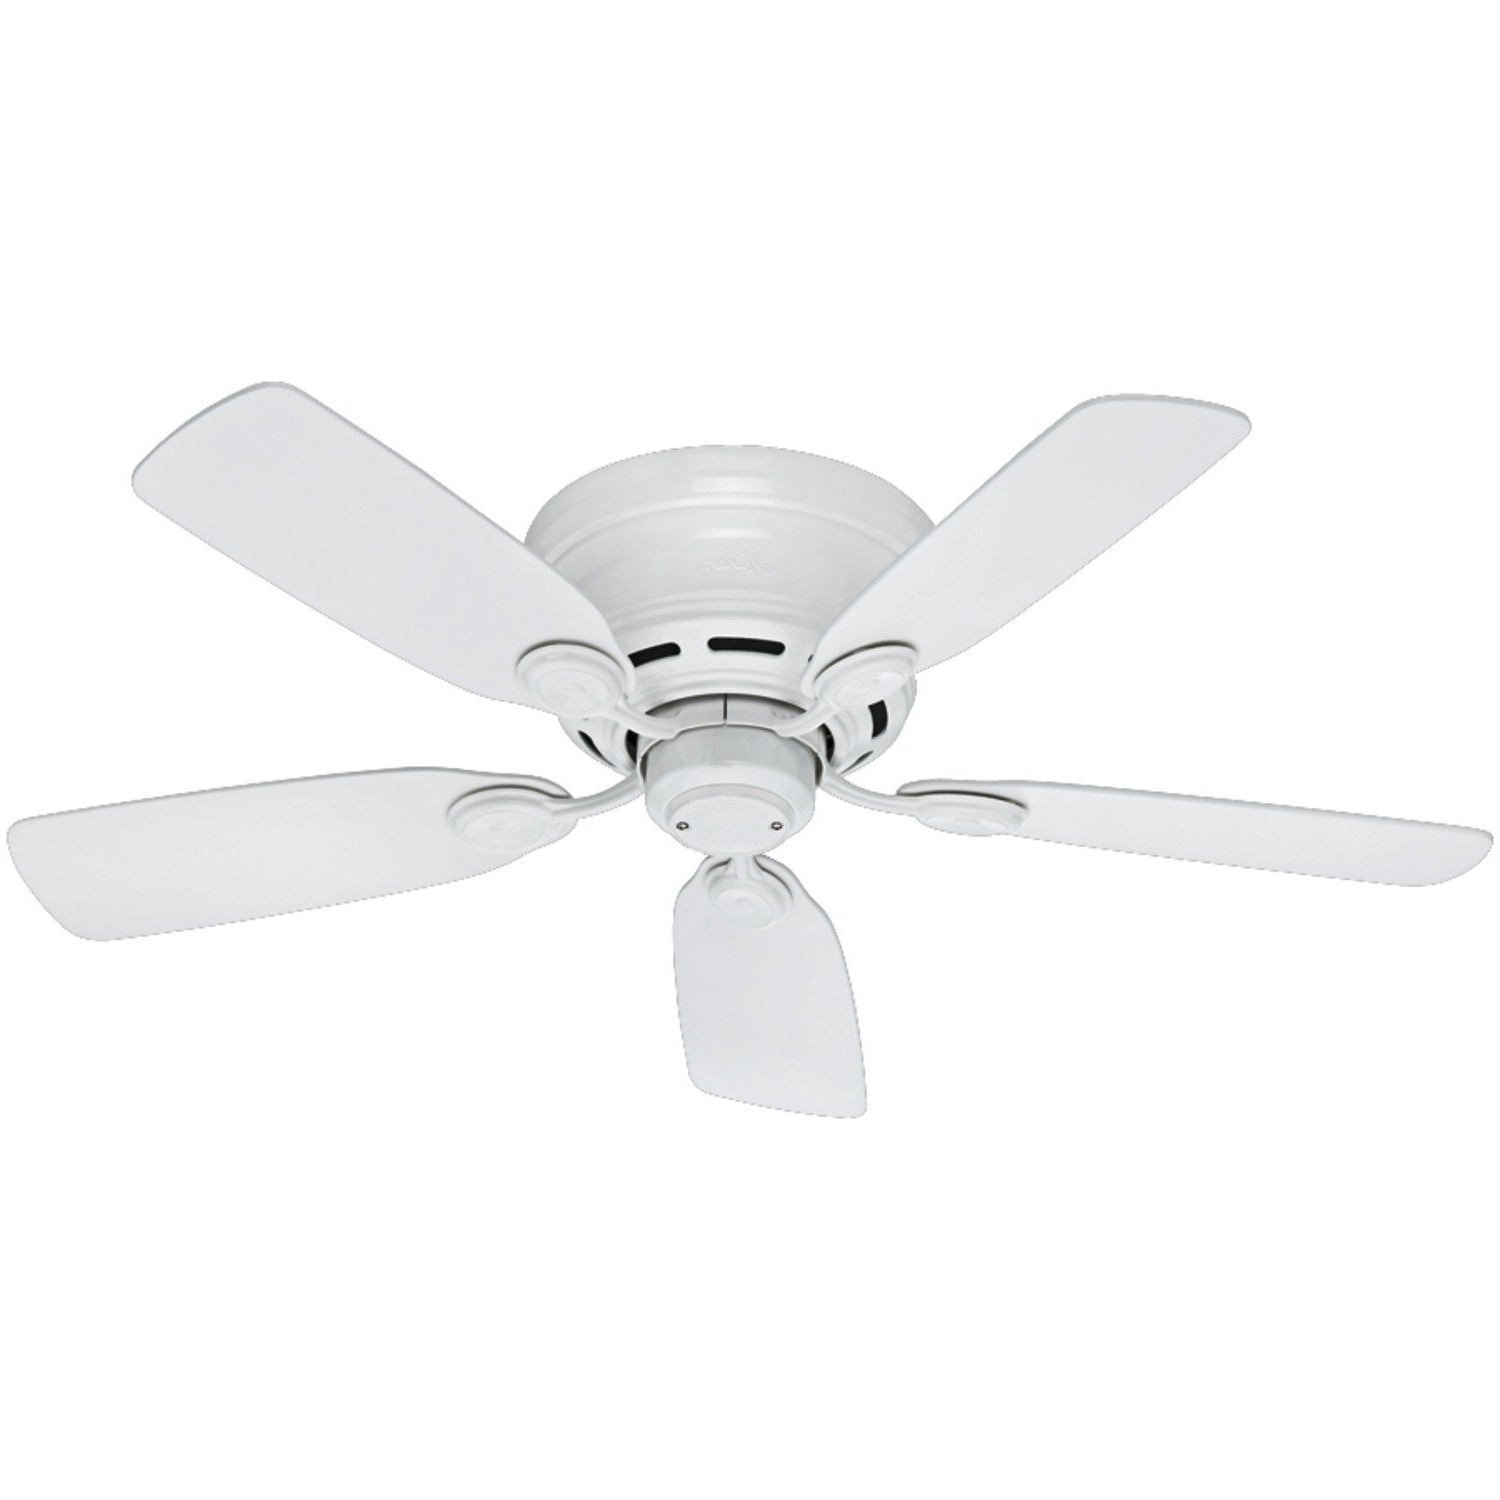 2019 Outdoor Ceiling Fans With Long Downrod Intended For Flush Mount Ceiling Fans Review – Choose The Best (View 15 of 20)